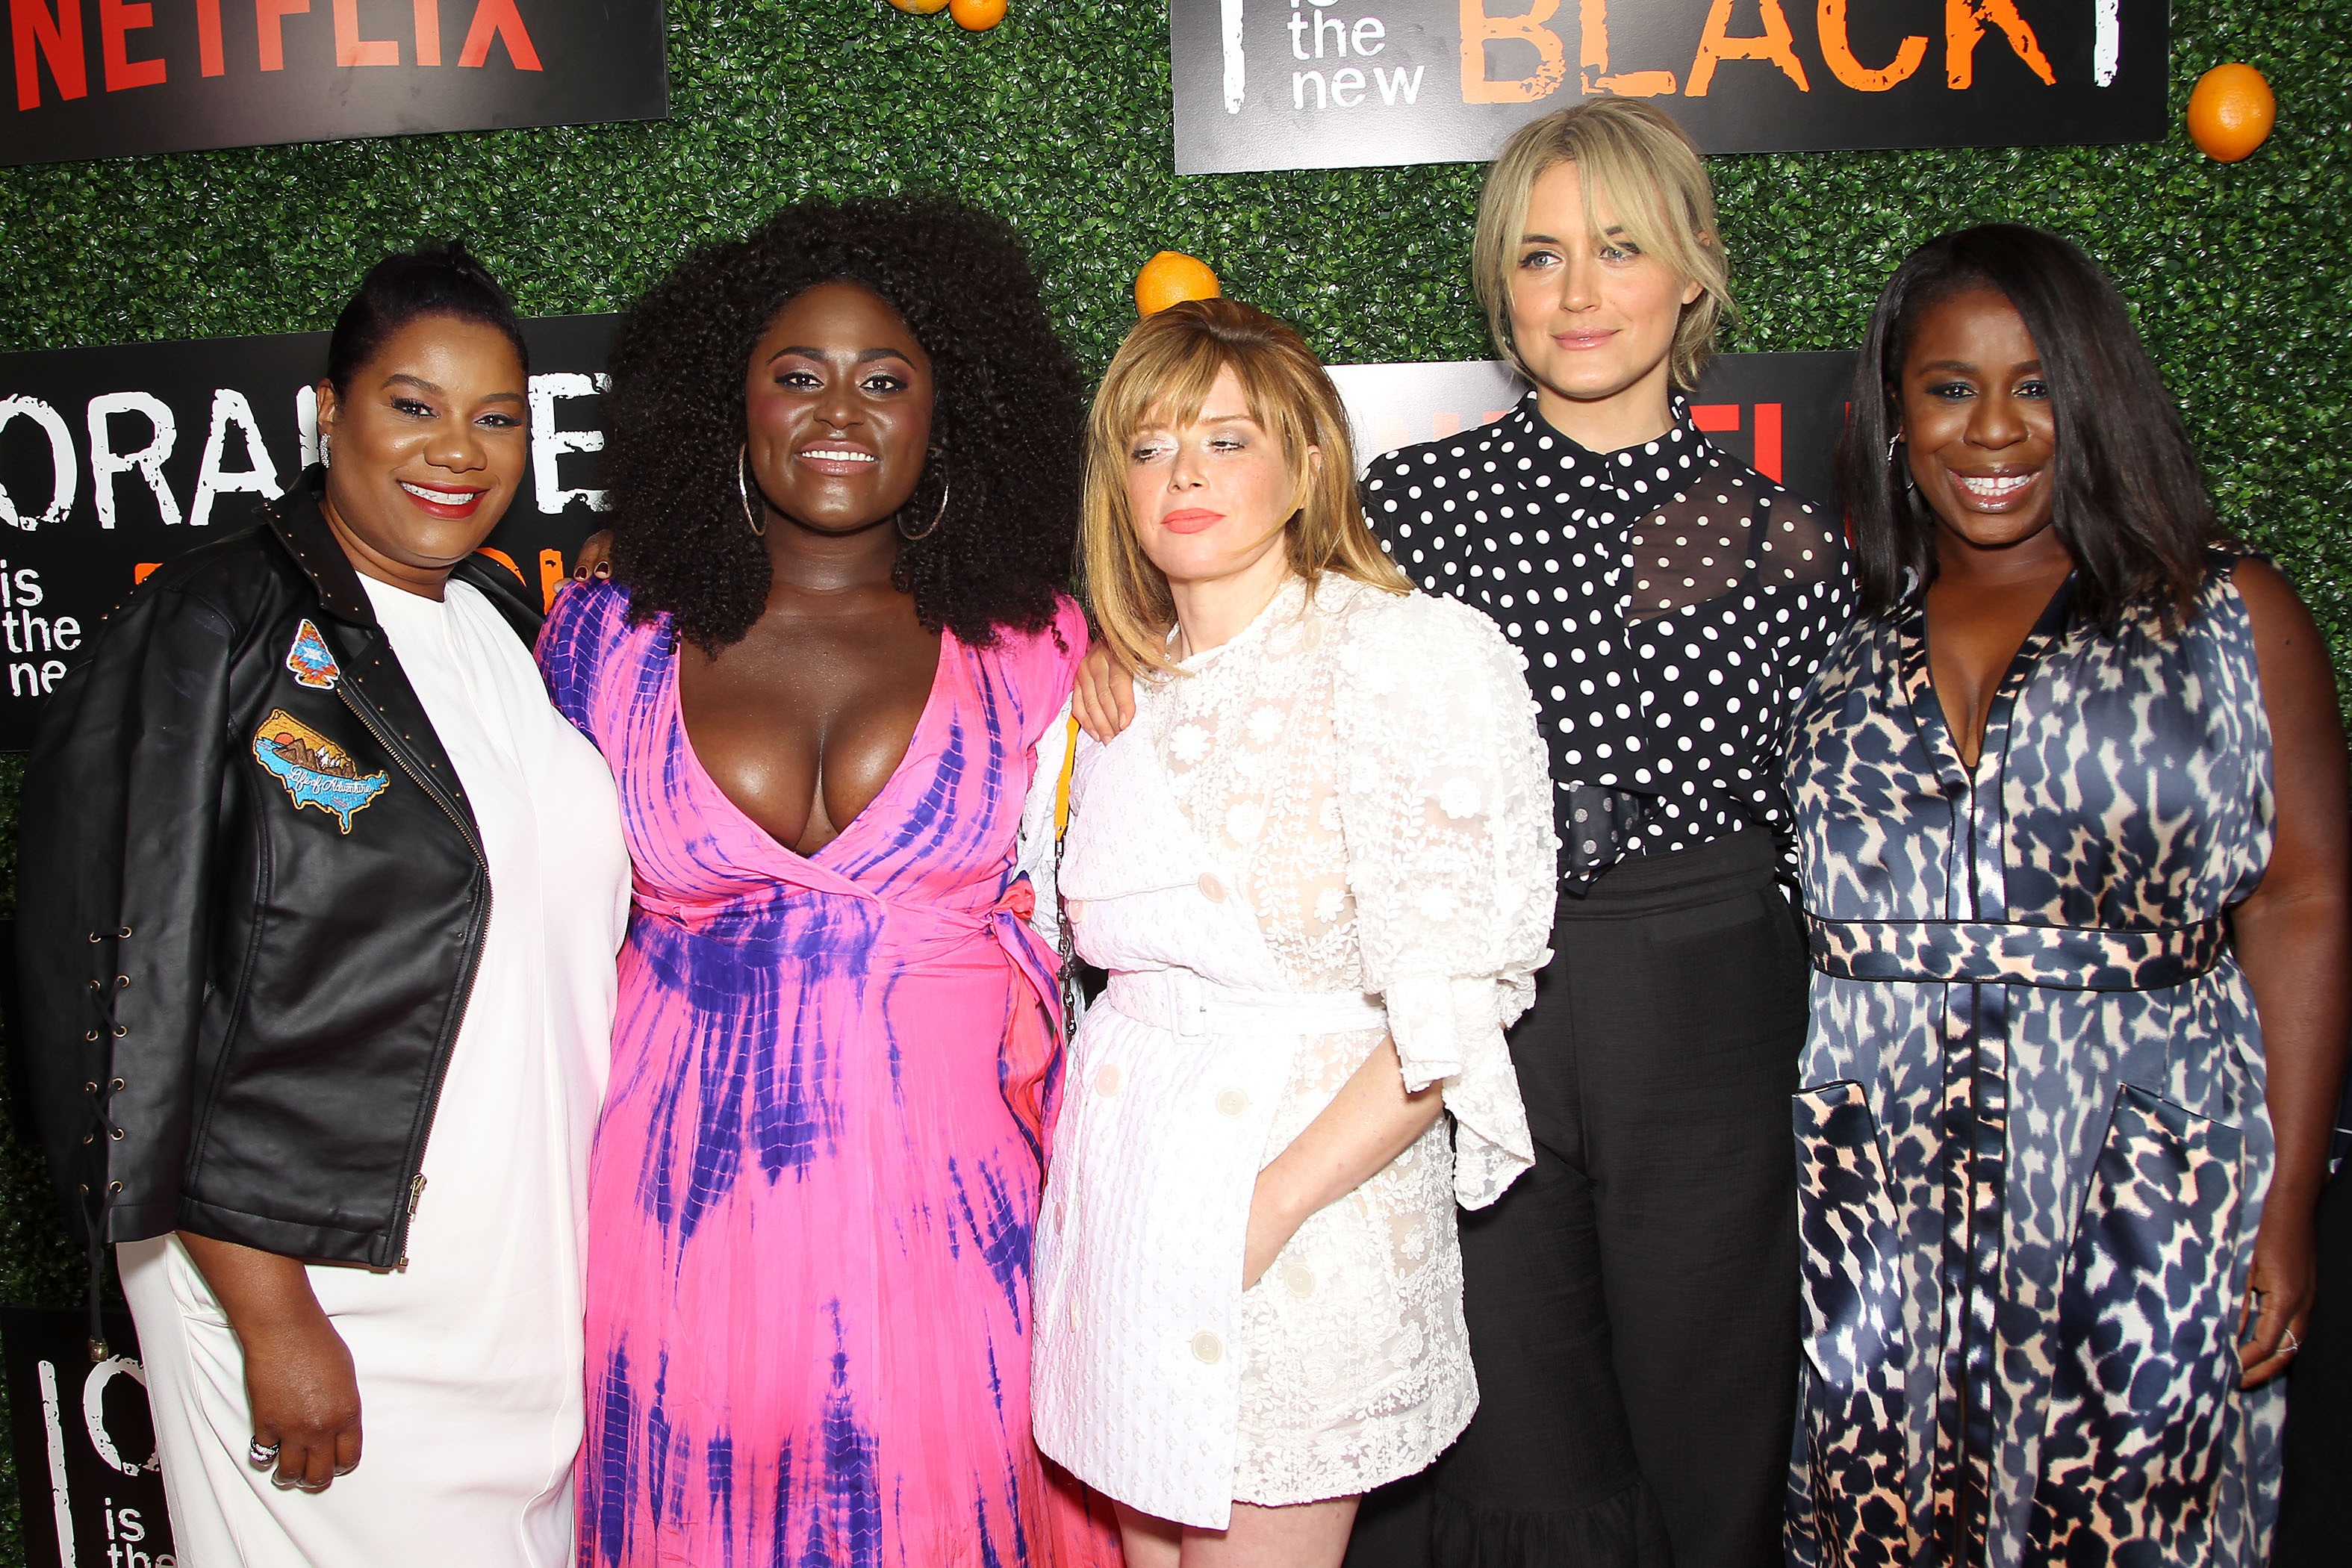 orange is the new black cast announces series will end with season